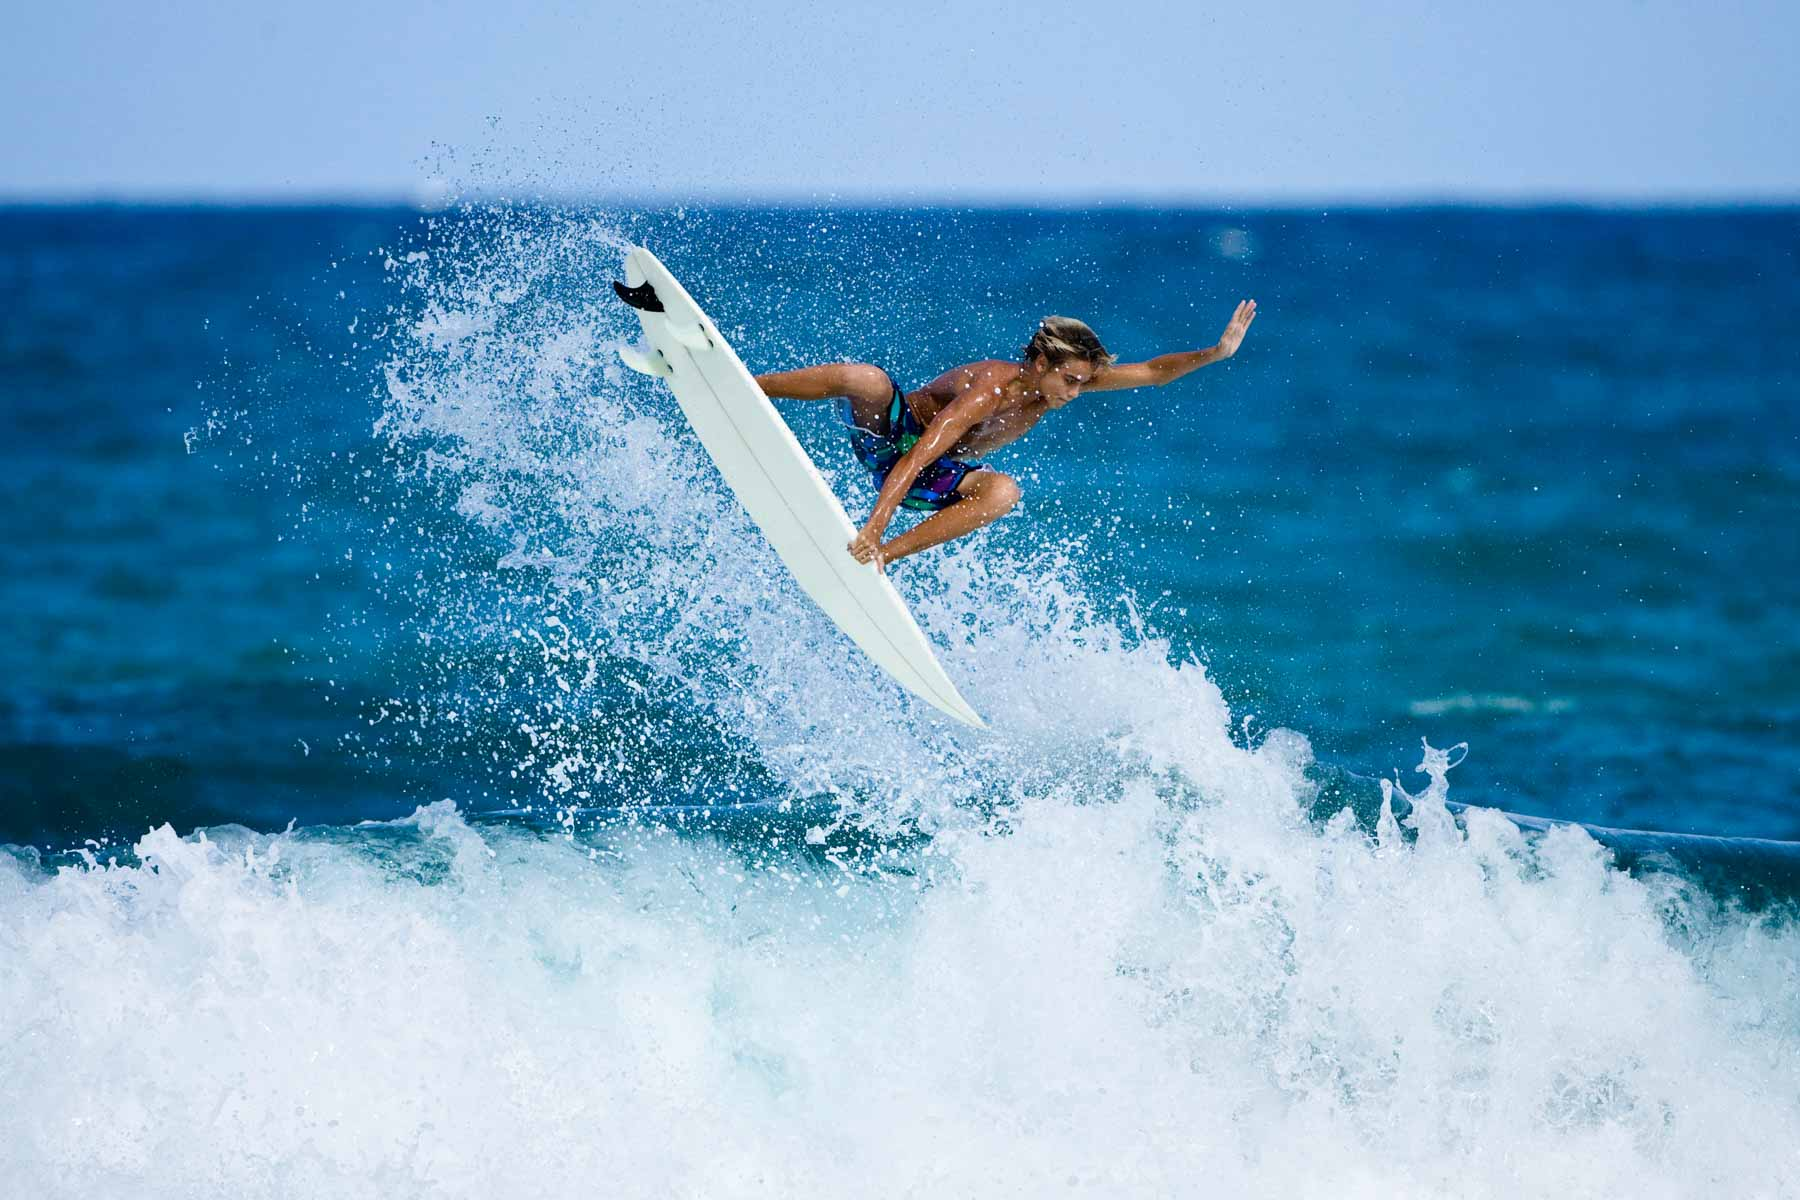 teen-surfer_000009642901_Large1.jpg